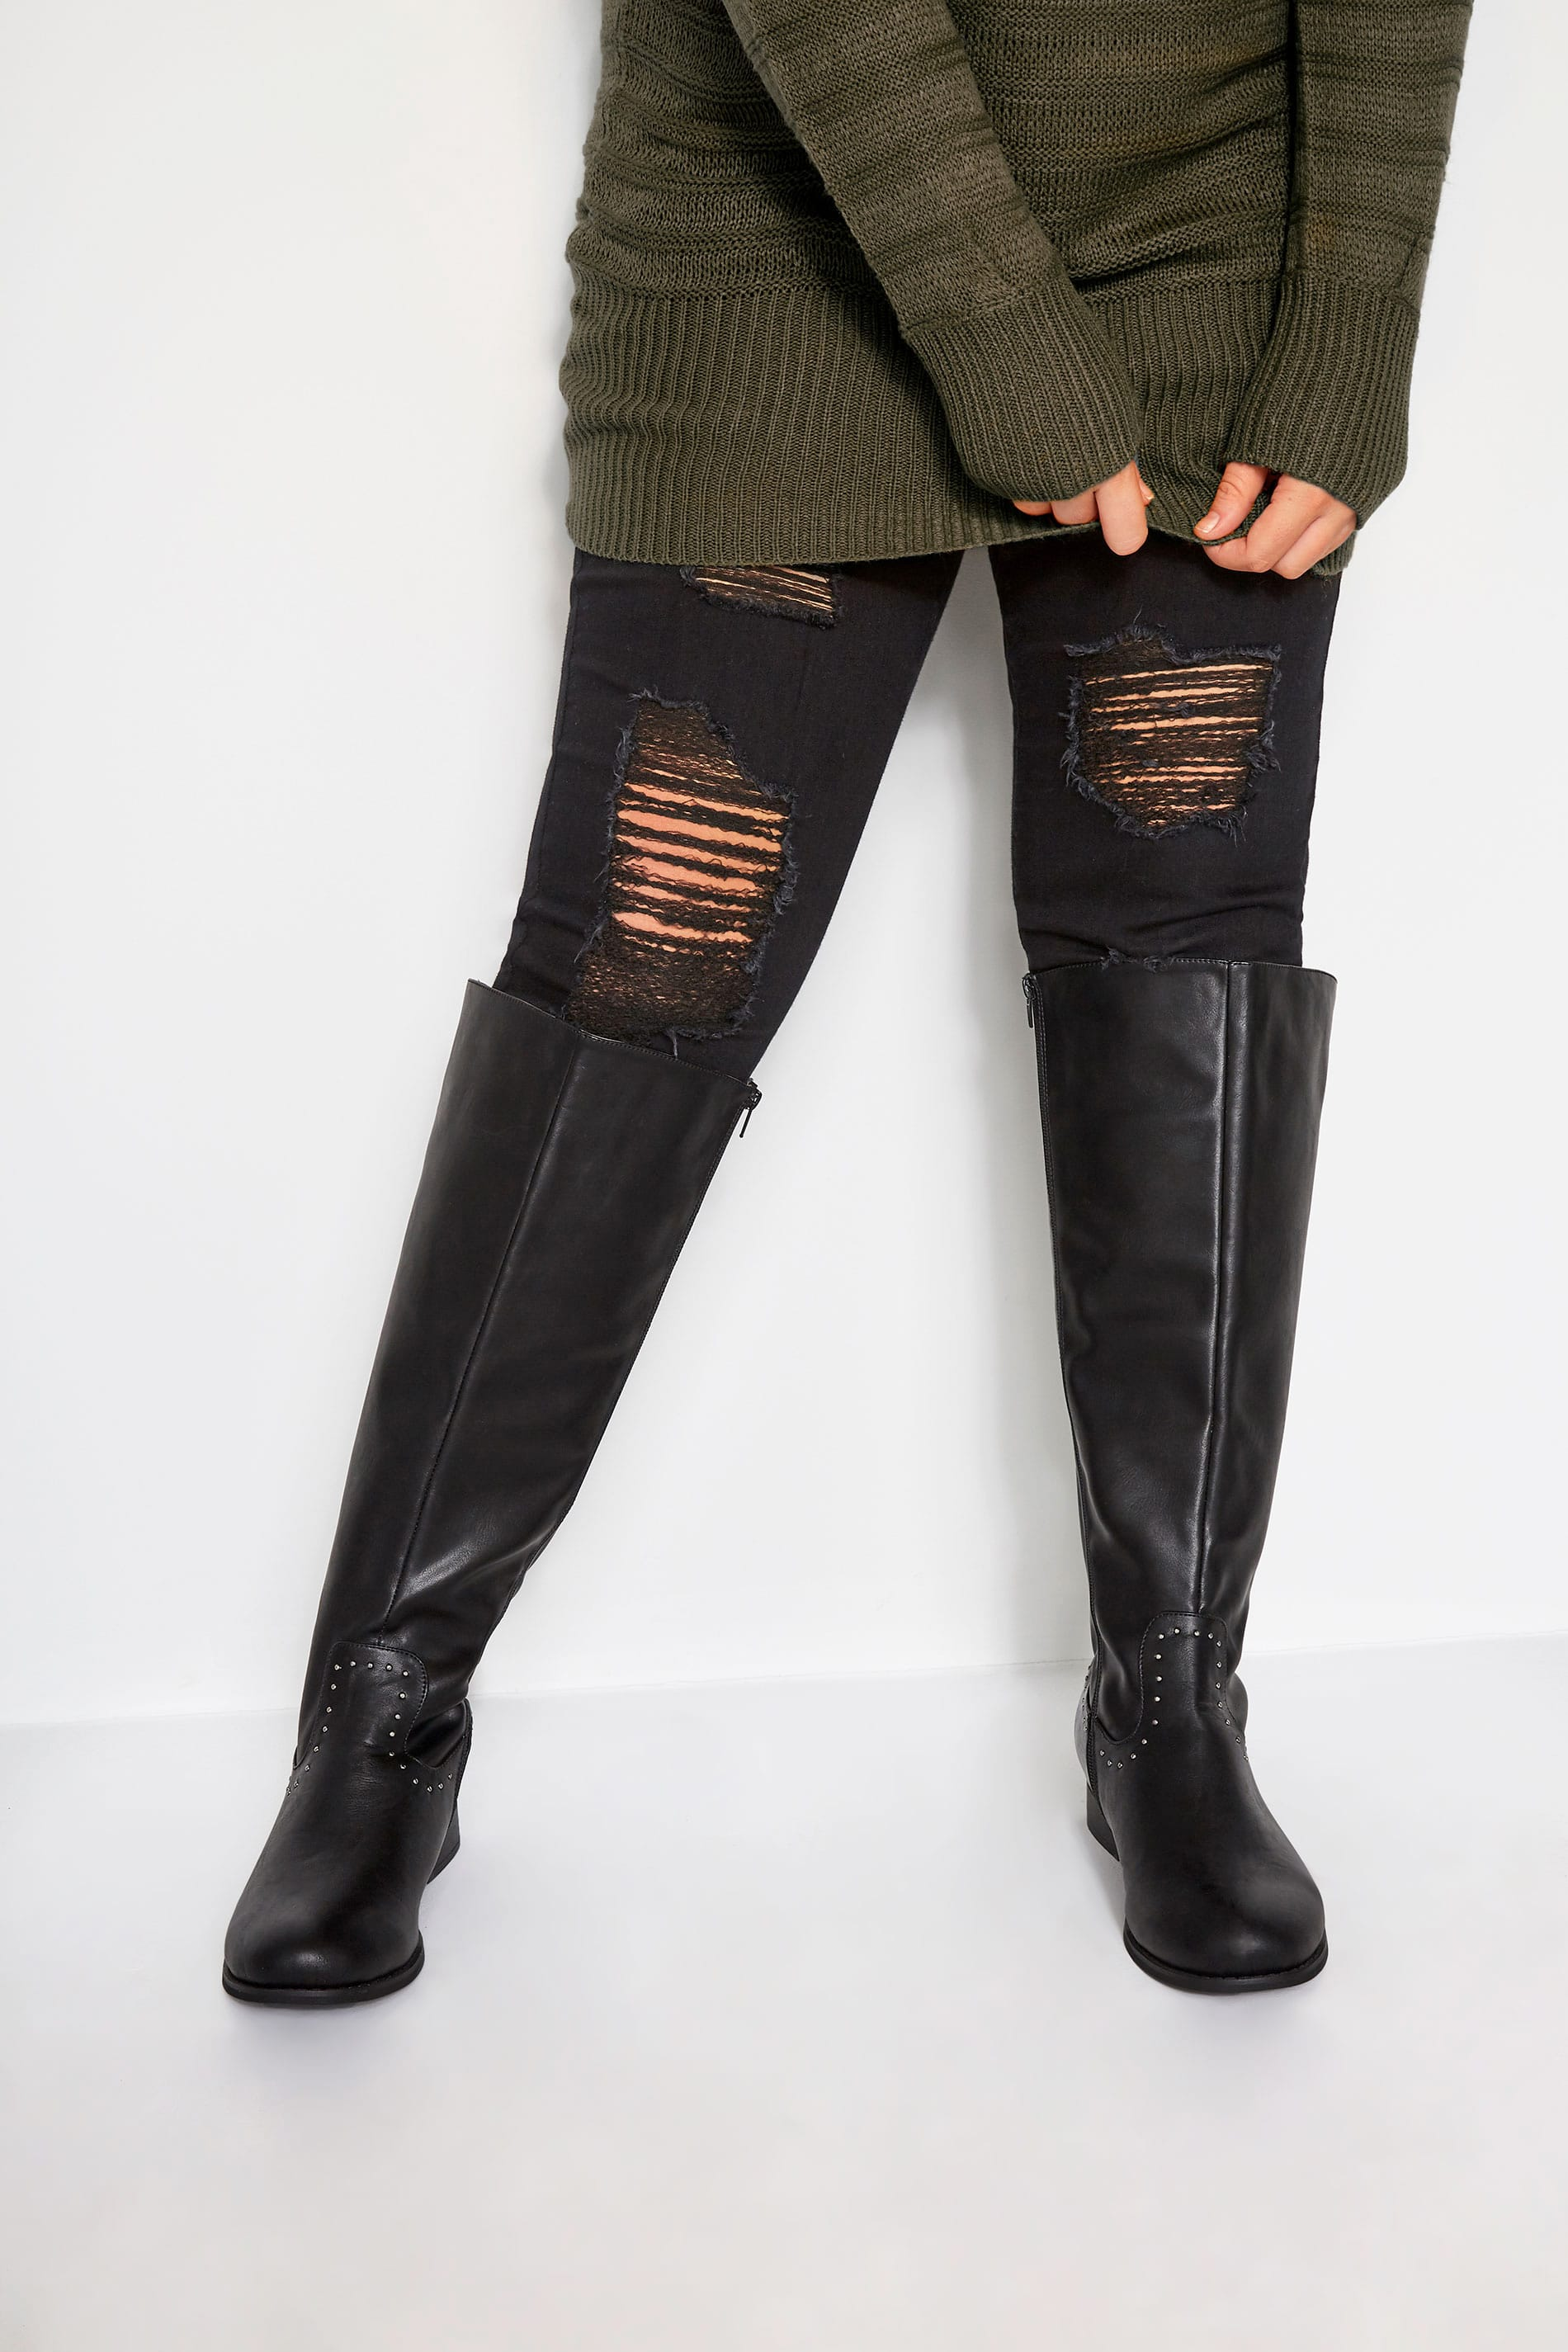 Black Studded Trim Stretch Knee High Boots In Extra Wide Fit